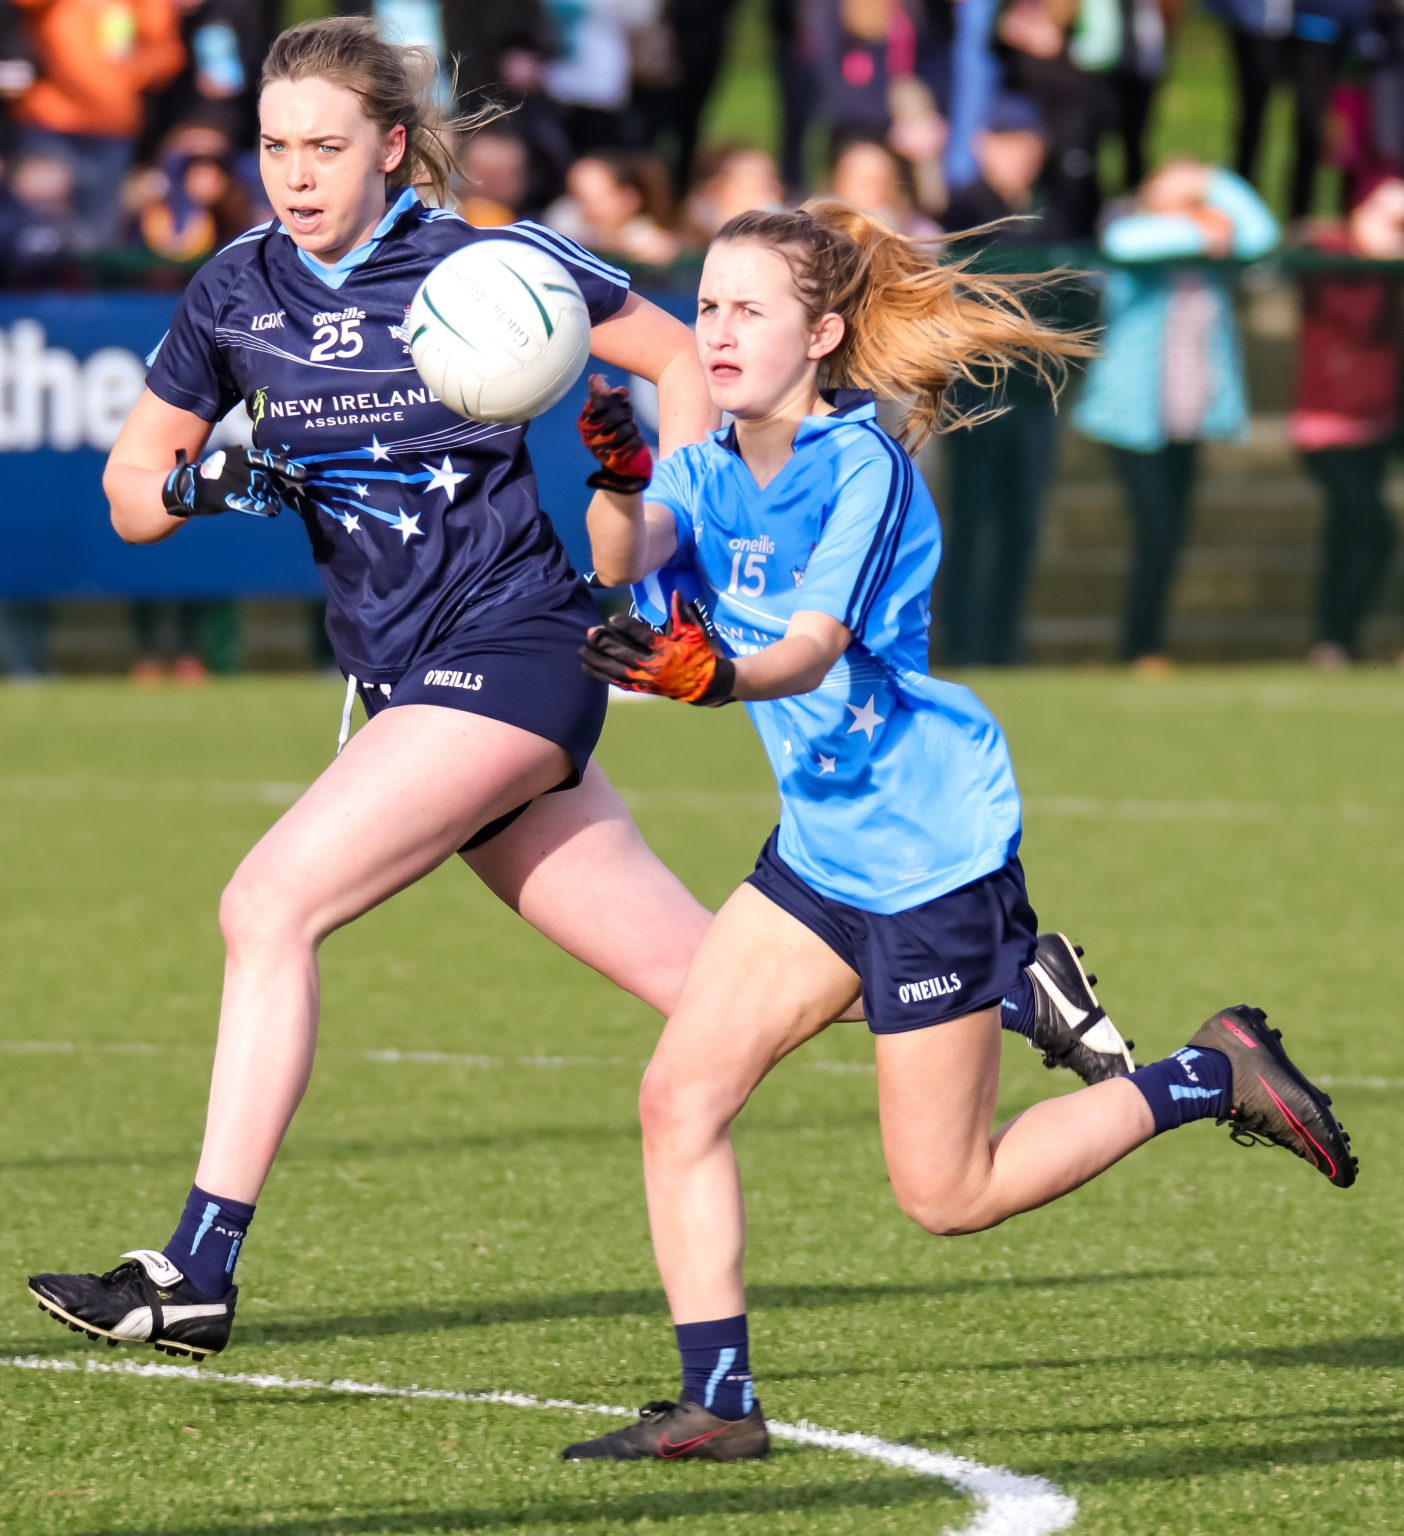 Gaby Couch Hand Passes The Ball As The Blue Team Attack's During The Junior Dub Stars Game